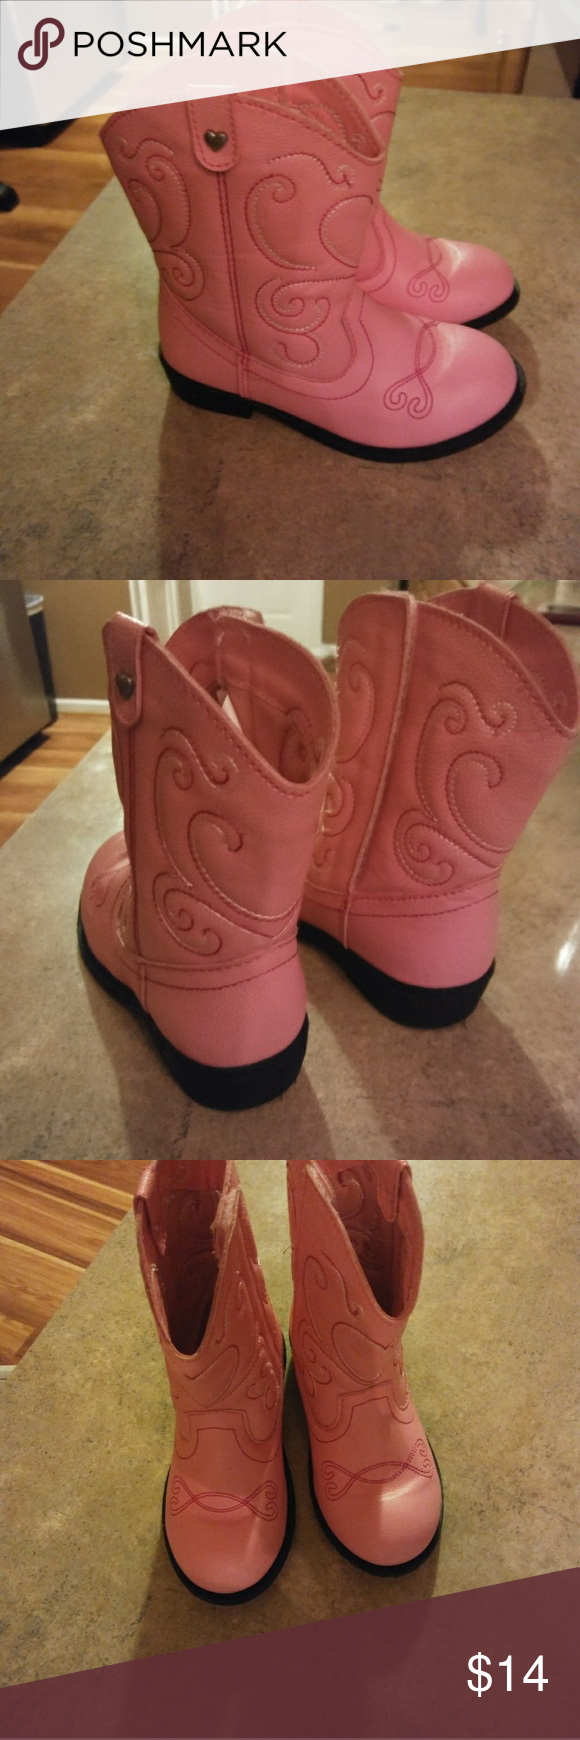 Toddler cowgirl boots size 8 Toddler cowgirl boots Size 8 Pink  great condition Shoes Boots